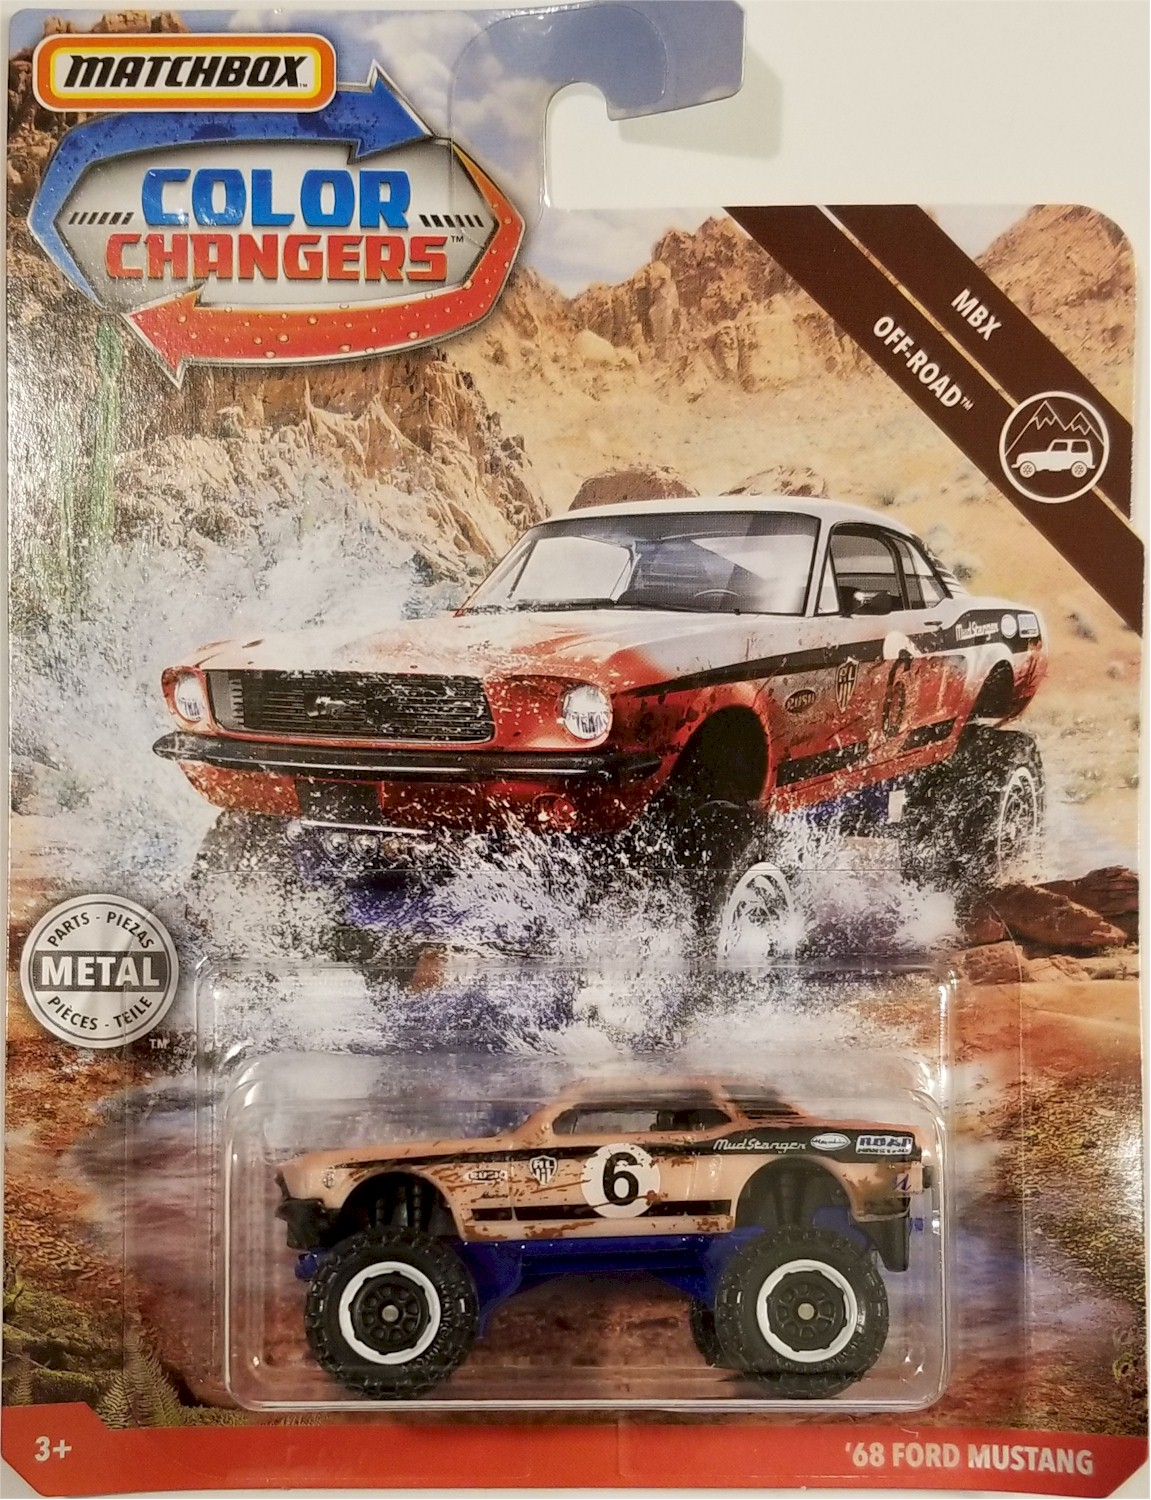 2019 Matchbox Color Changers /'68 Ford Mustang WHITE MOC MUDSTANGER